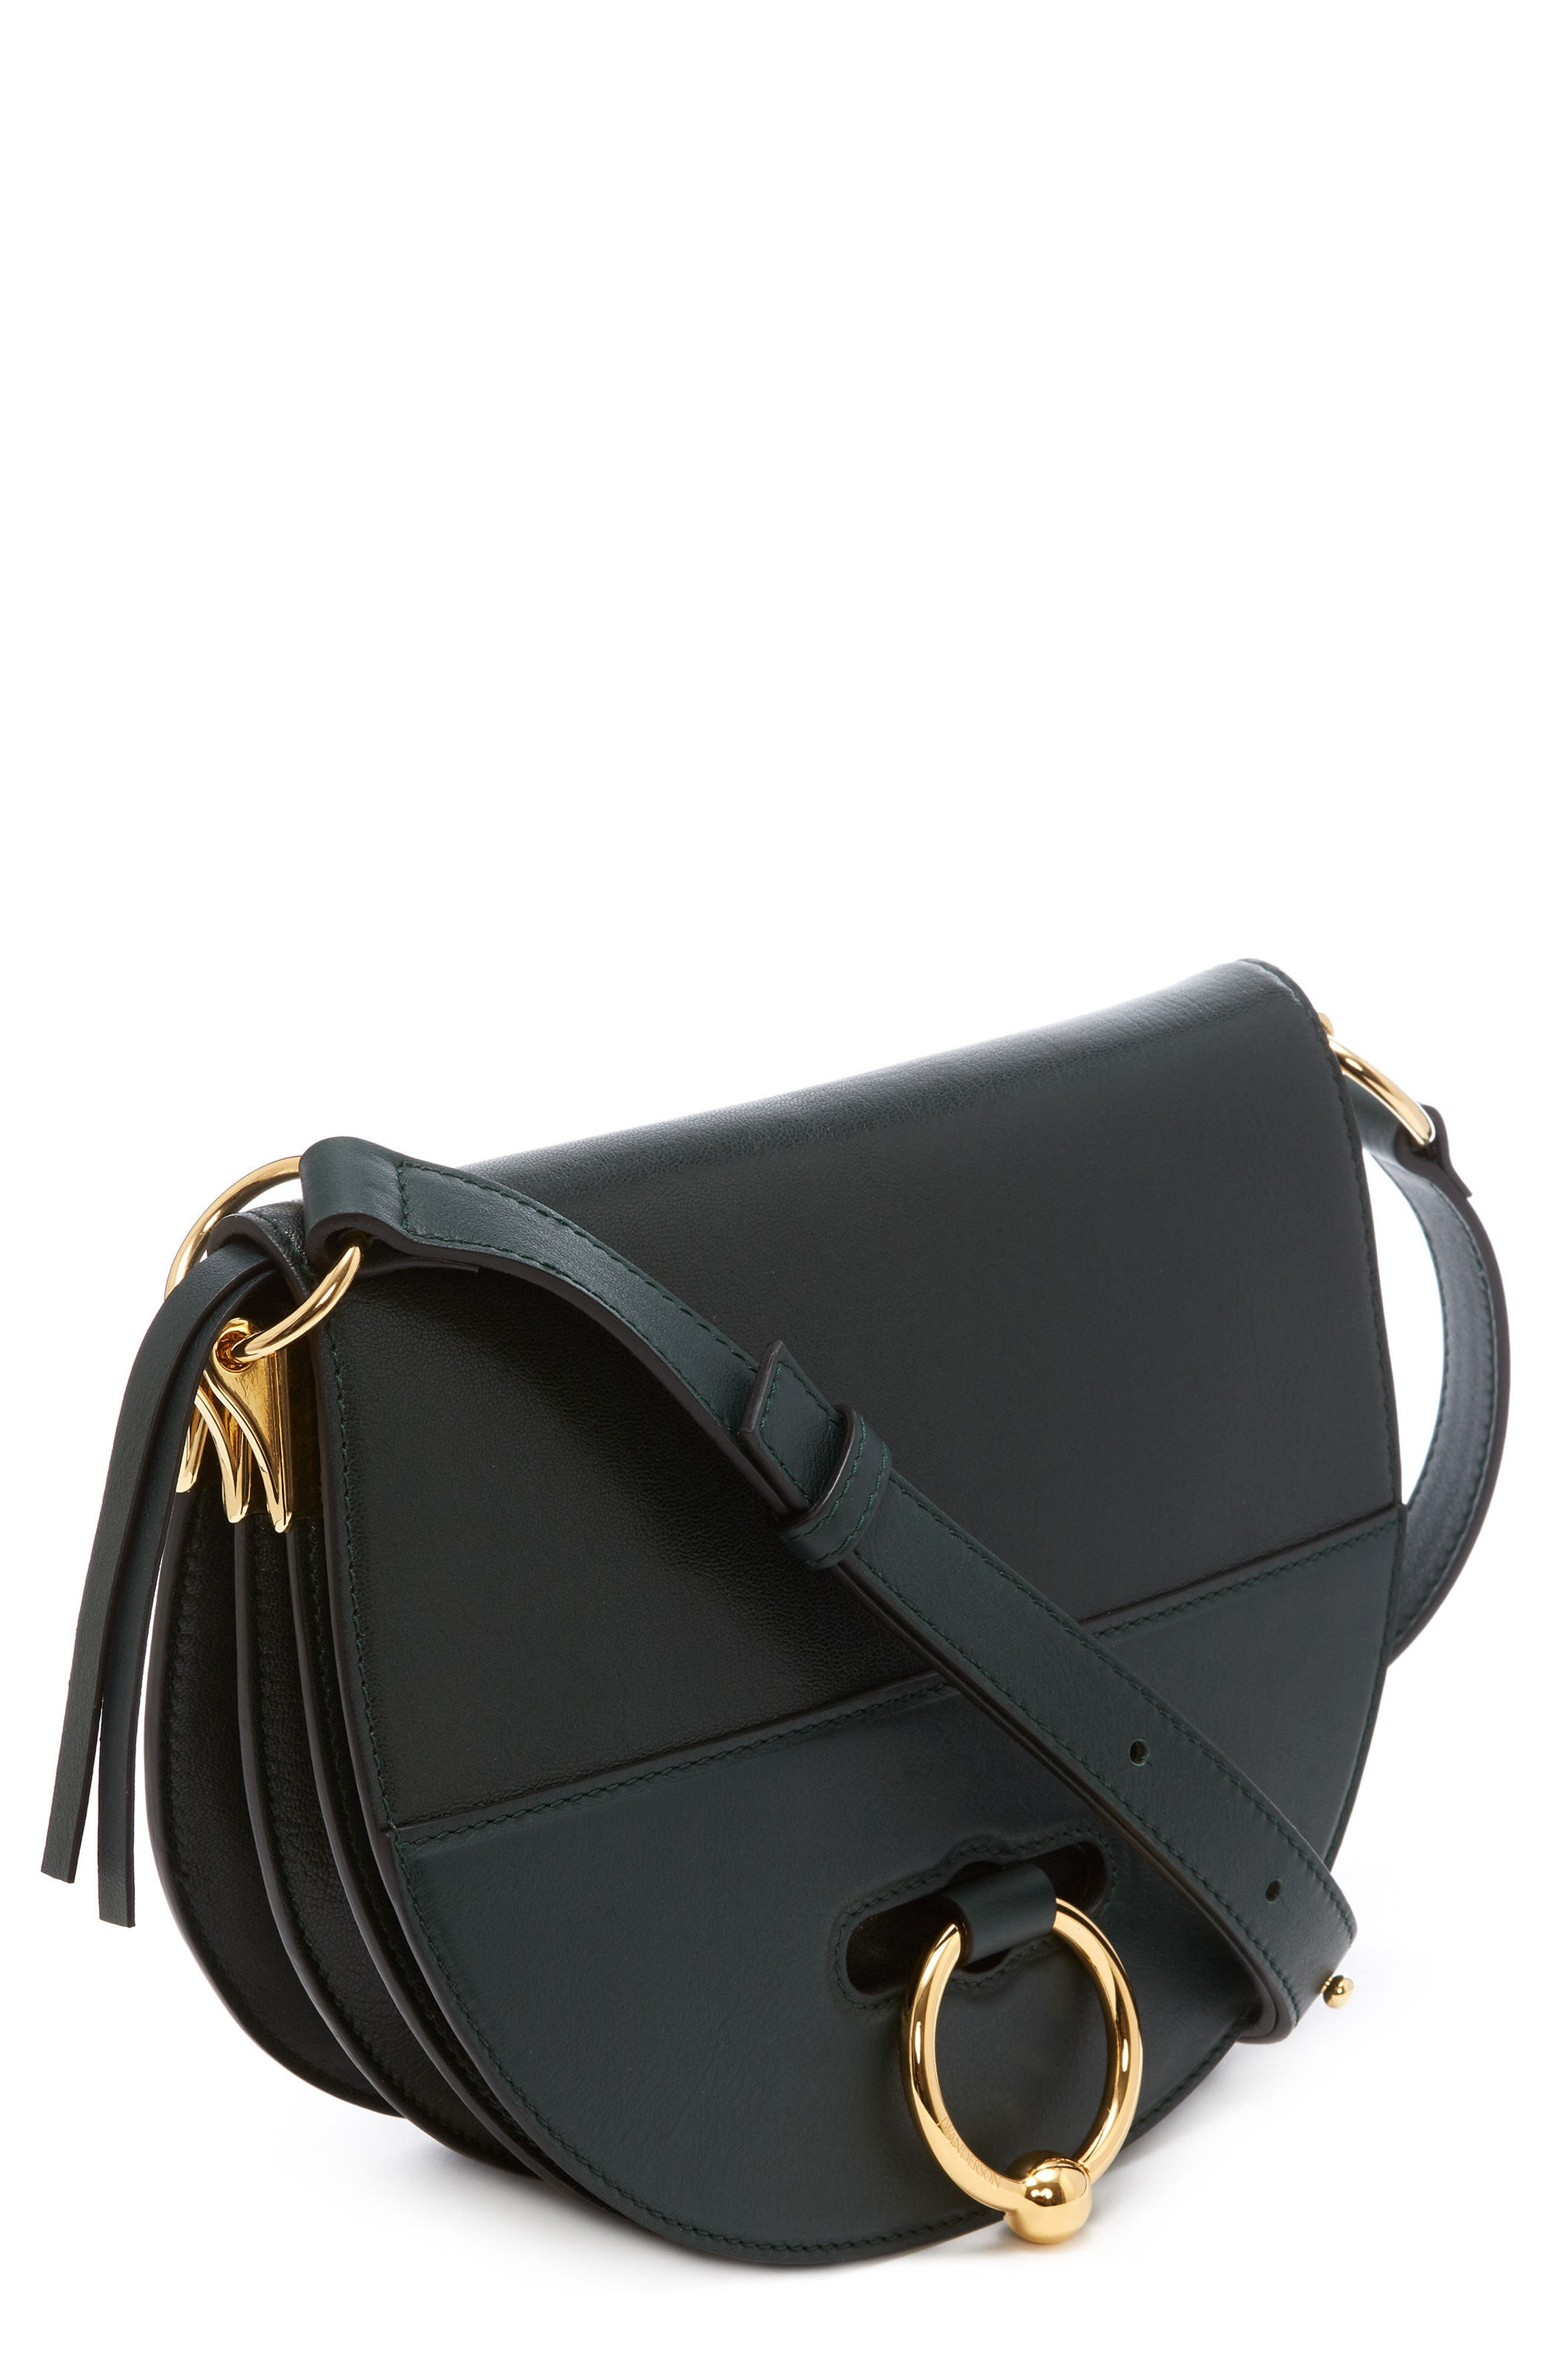 J.W.ANDERSON Latch Crossbody Bag,                         Main,                         color, Forest Green